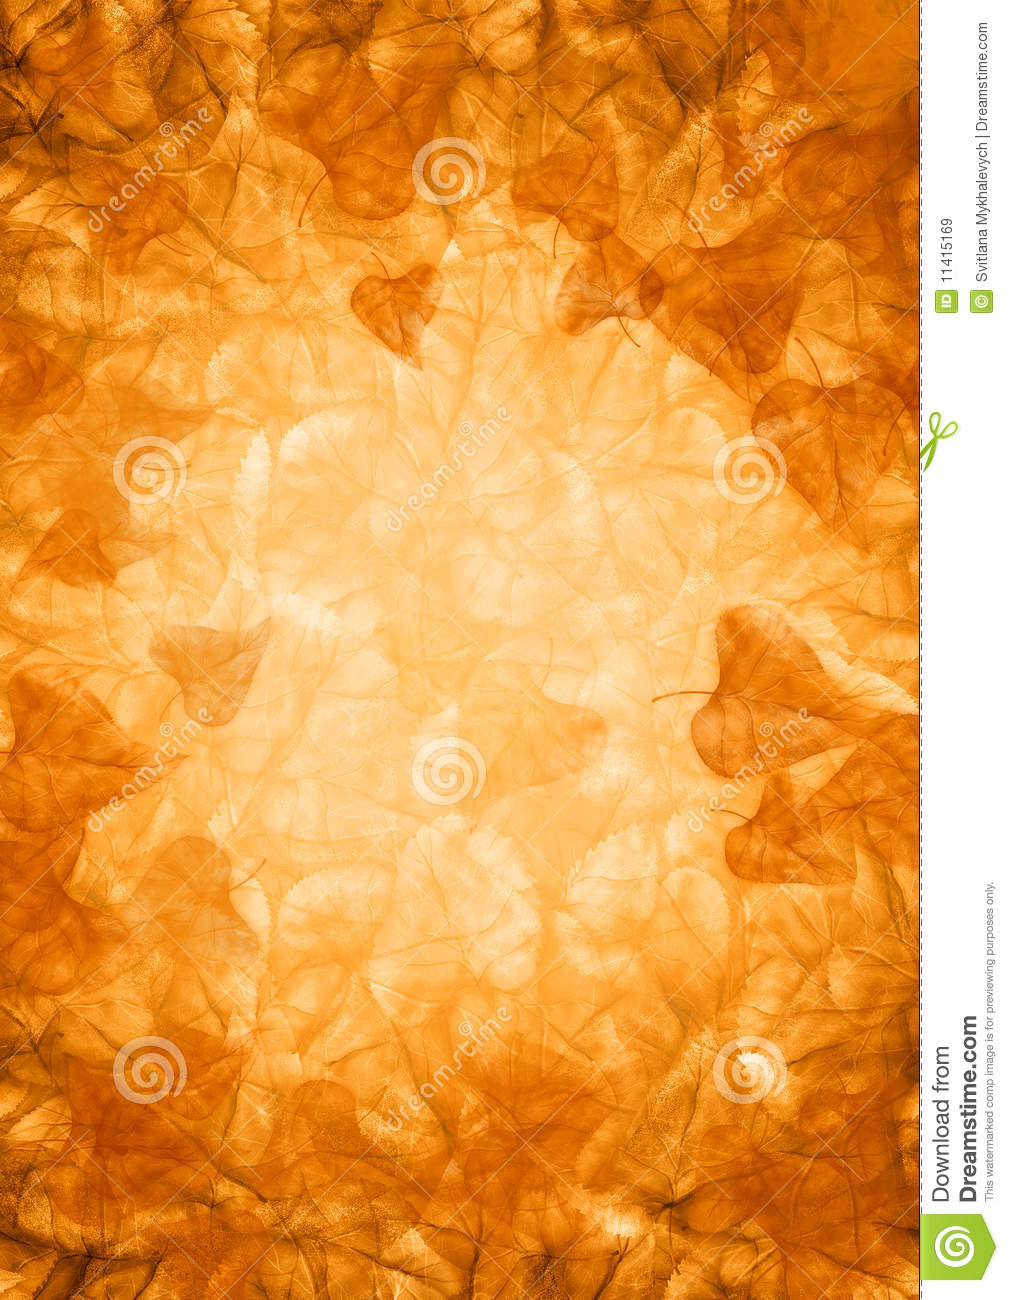 Fall Leaves Wallpaper Powerpoint Background Gold Fall Background Stock Illustration Illustration Of